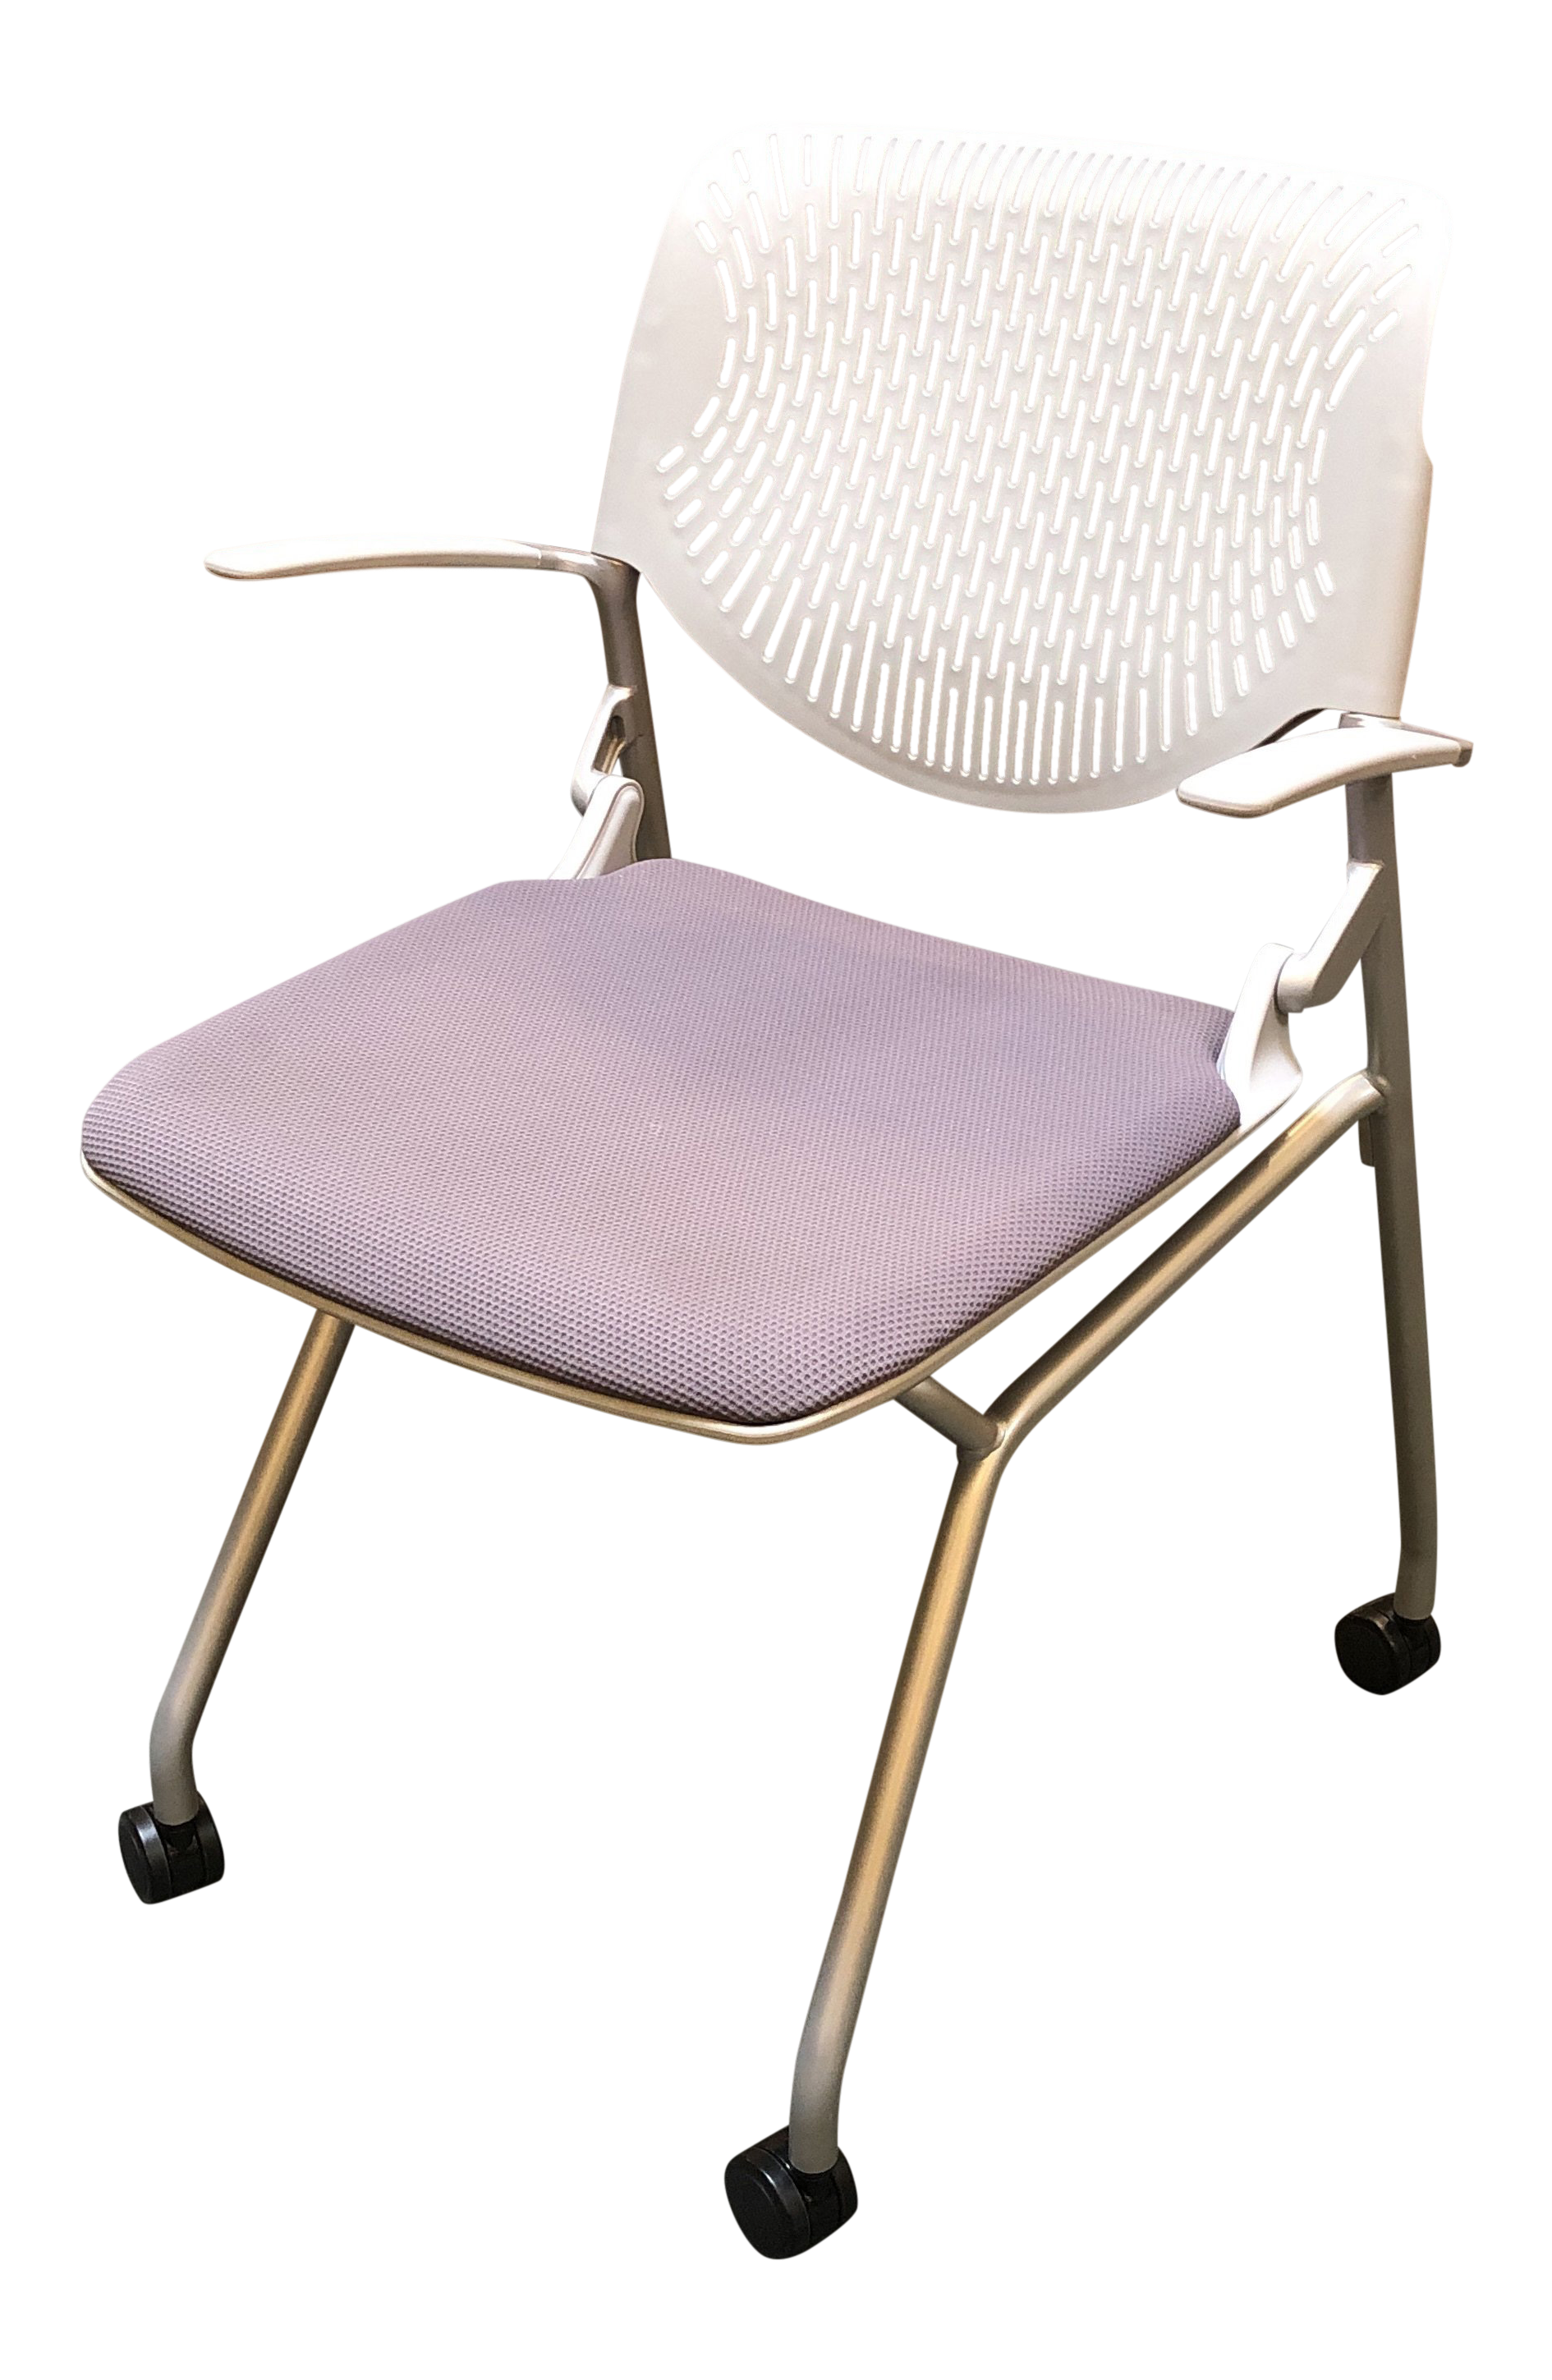 Stupendous Runa Nesting Office Chair By Room Board Cjindustries Chair Design For Home Cjindustriesco